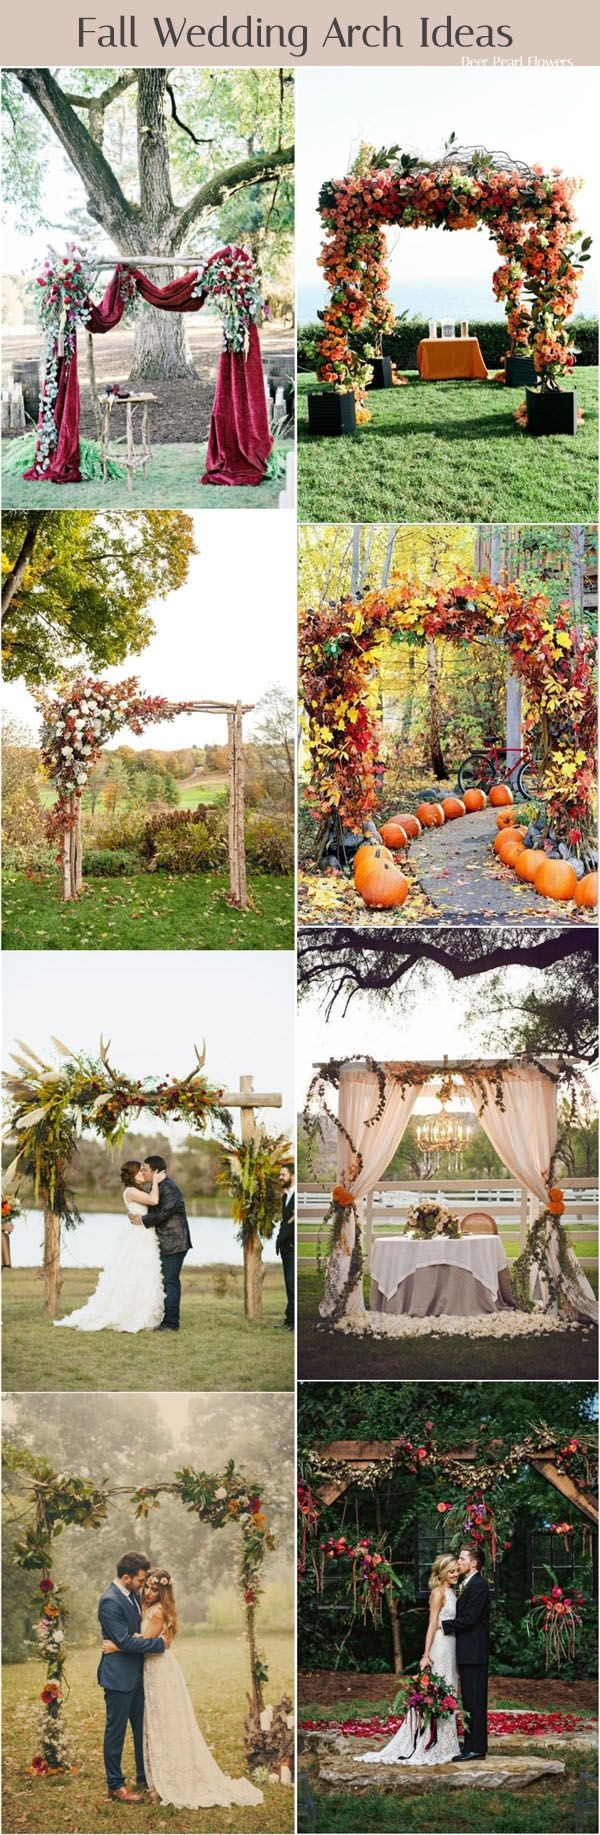 Fall wedding arch and alter decor ideas / http://www.deerpearlflowers.com/fall-wedding-ideas-for-2017/2/